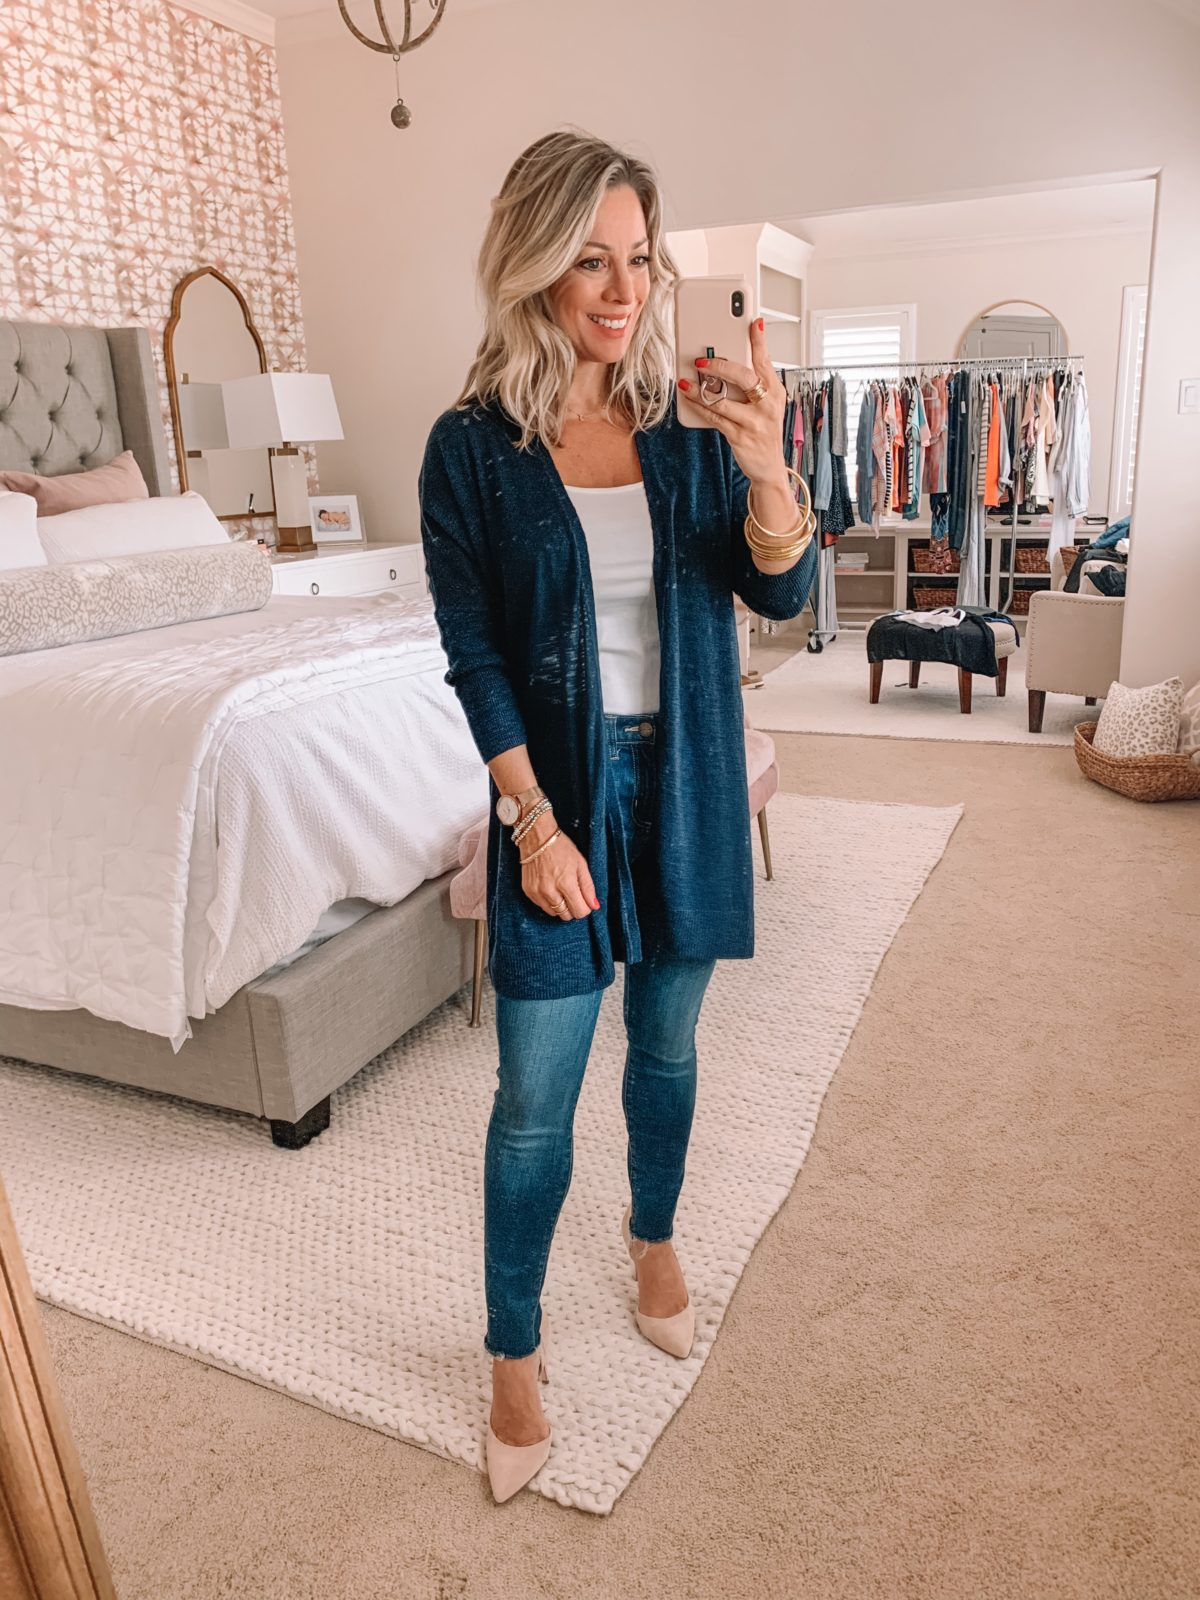 Amazon Fashion Finds, Jeans, Navy Cardigan, Heels